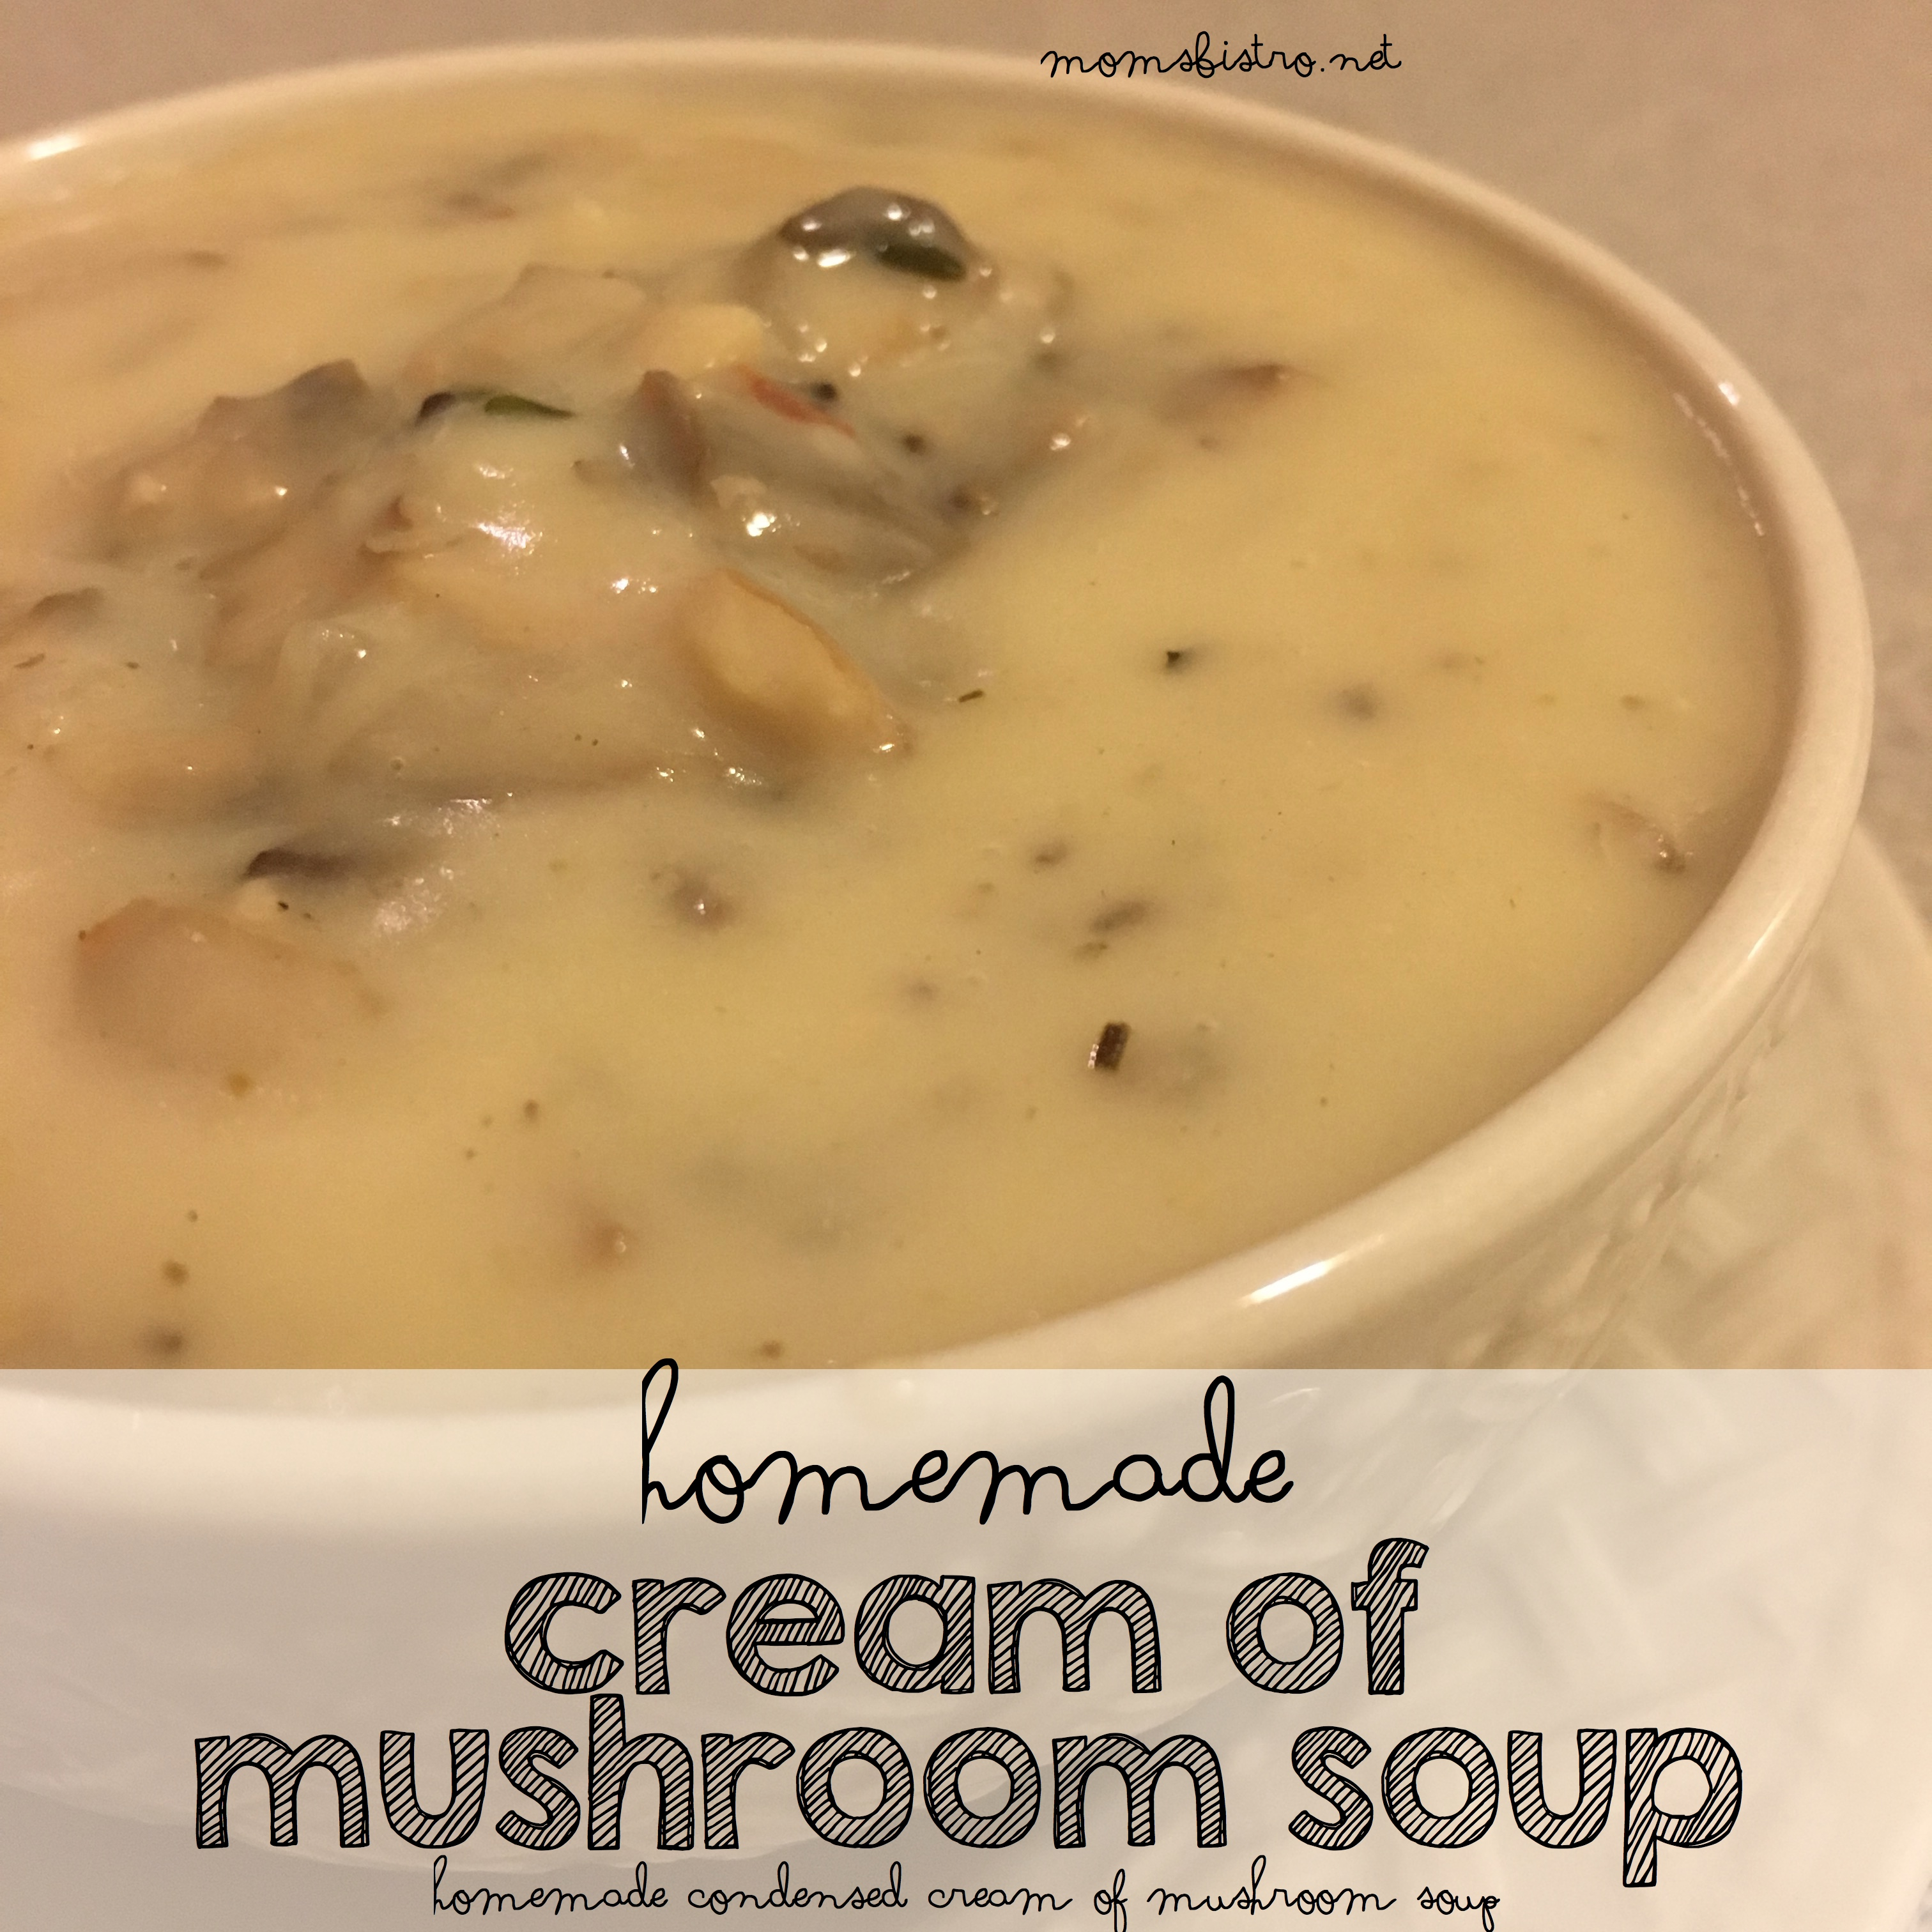 Make Homemade Cream Of Mushroom Soup To Use In Your Favorite Recipes With This Cheap and Easy 15-Minute Recipe – Ditch The Can and Elevate Dinner with This Easy Homemade Cream of Mushroom Soup Recipe | #FoolproofThanksgiving